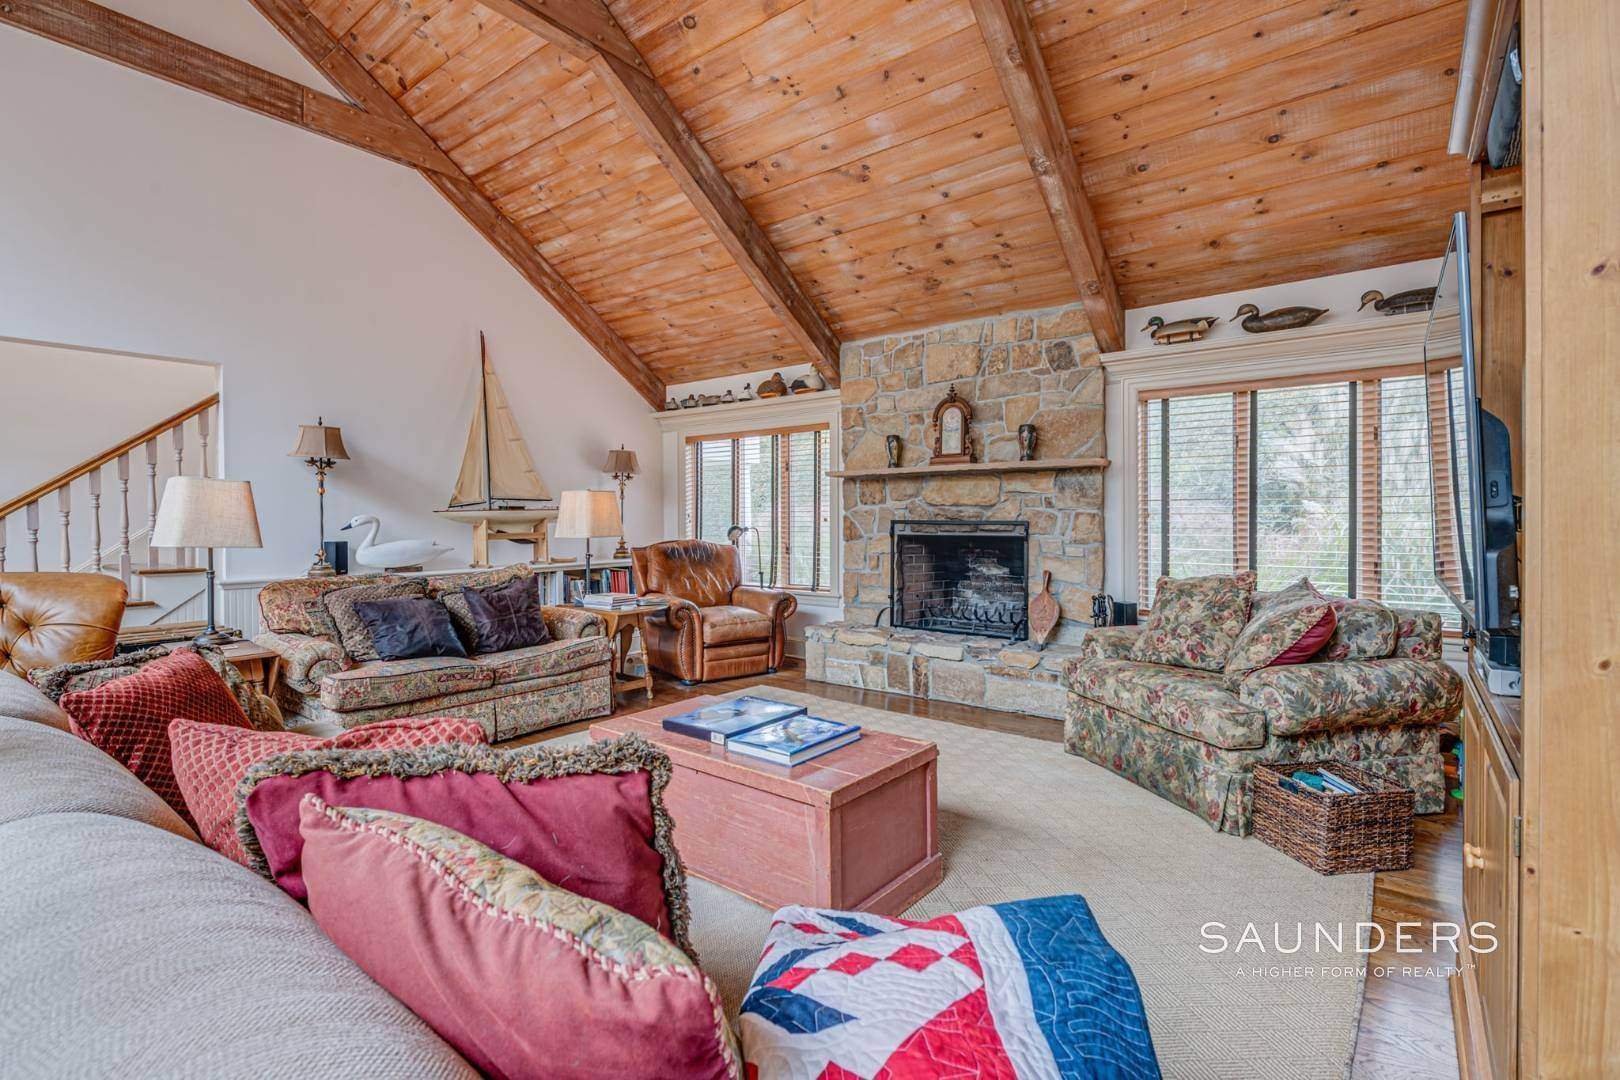 6. Single Family Homes for Sale at Prime 2.8 Acres In Sagaponack Village W/ Barn & Room For Tennis 44 Greenleaf Lane, Sagaponack Village, Southampton Town, NY 11962